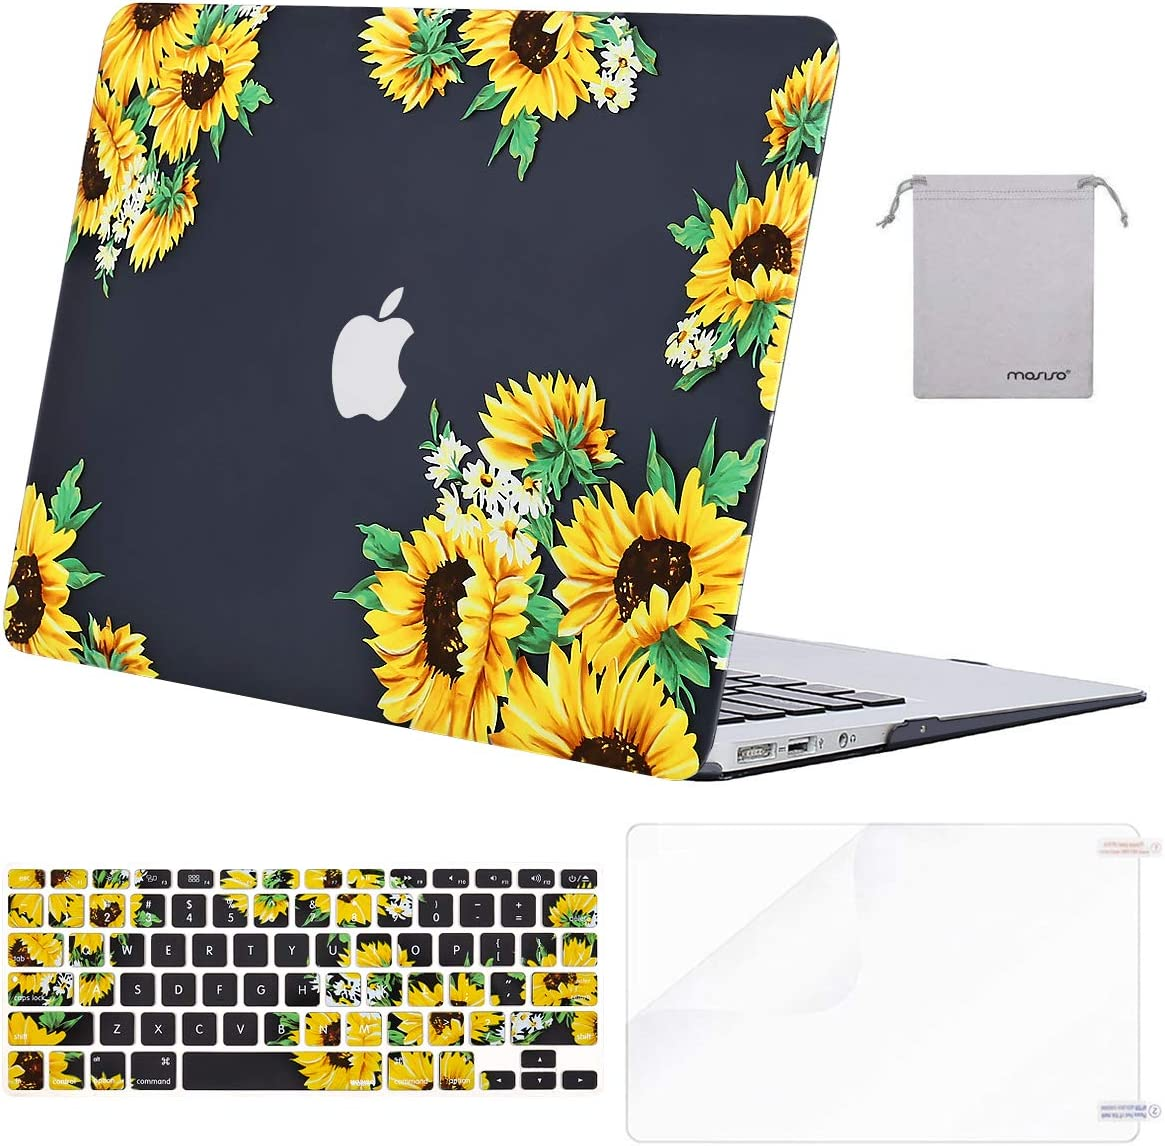 MOSISO MacBook Air 13 inch Case (A1369 A1466, Older Version 2010-2017 Release), Plastic Sunflower Hard Shell&Keyboard Cover&Screen Protector&Storage Bag Compatible with MacBook Air 13 inch, Black